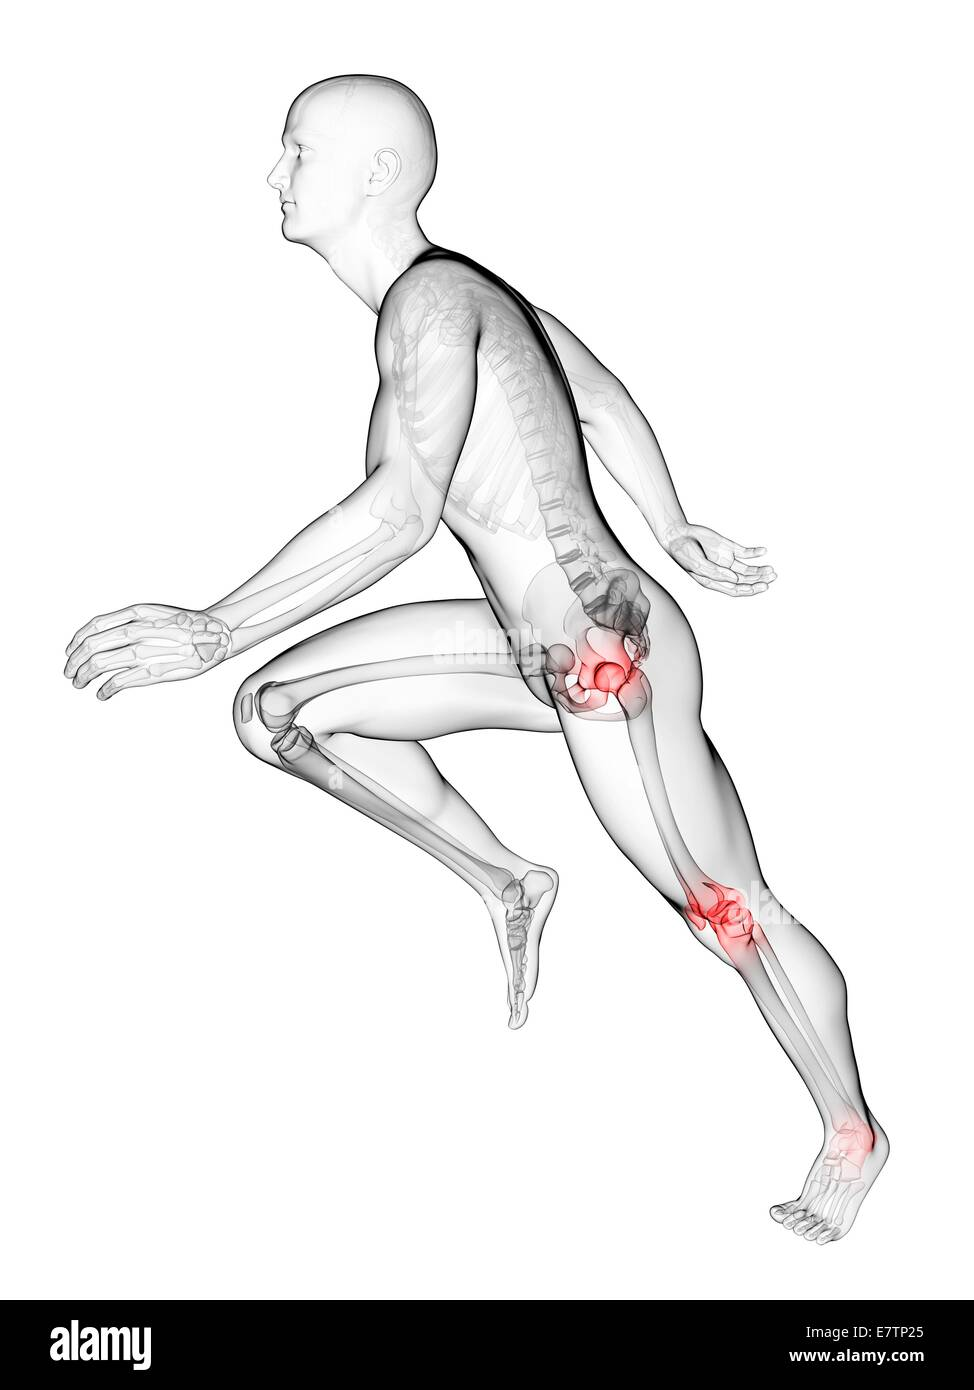 Human Anatomy Runners Knee Joint Stock Photos & Human Anatomy ...